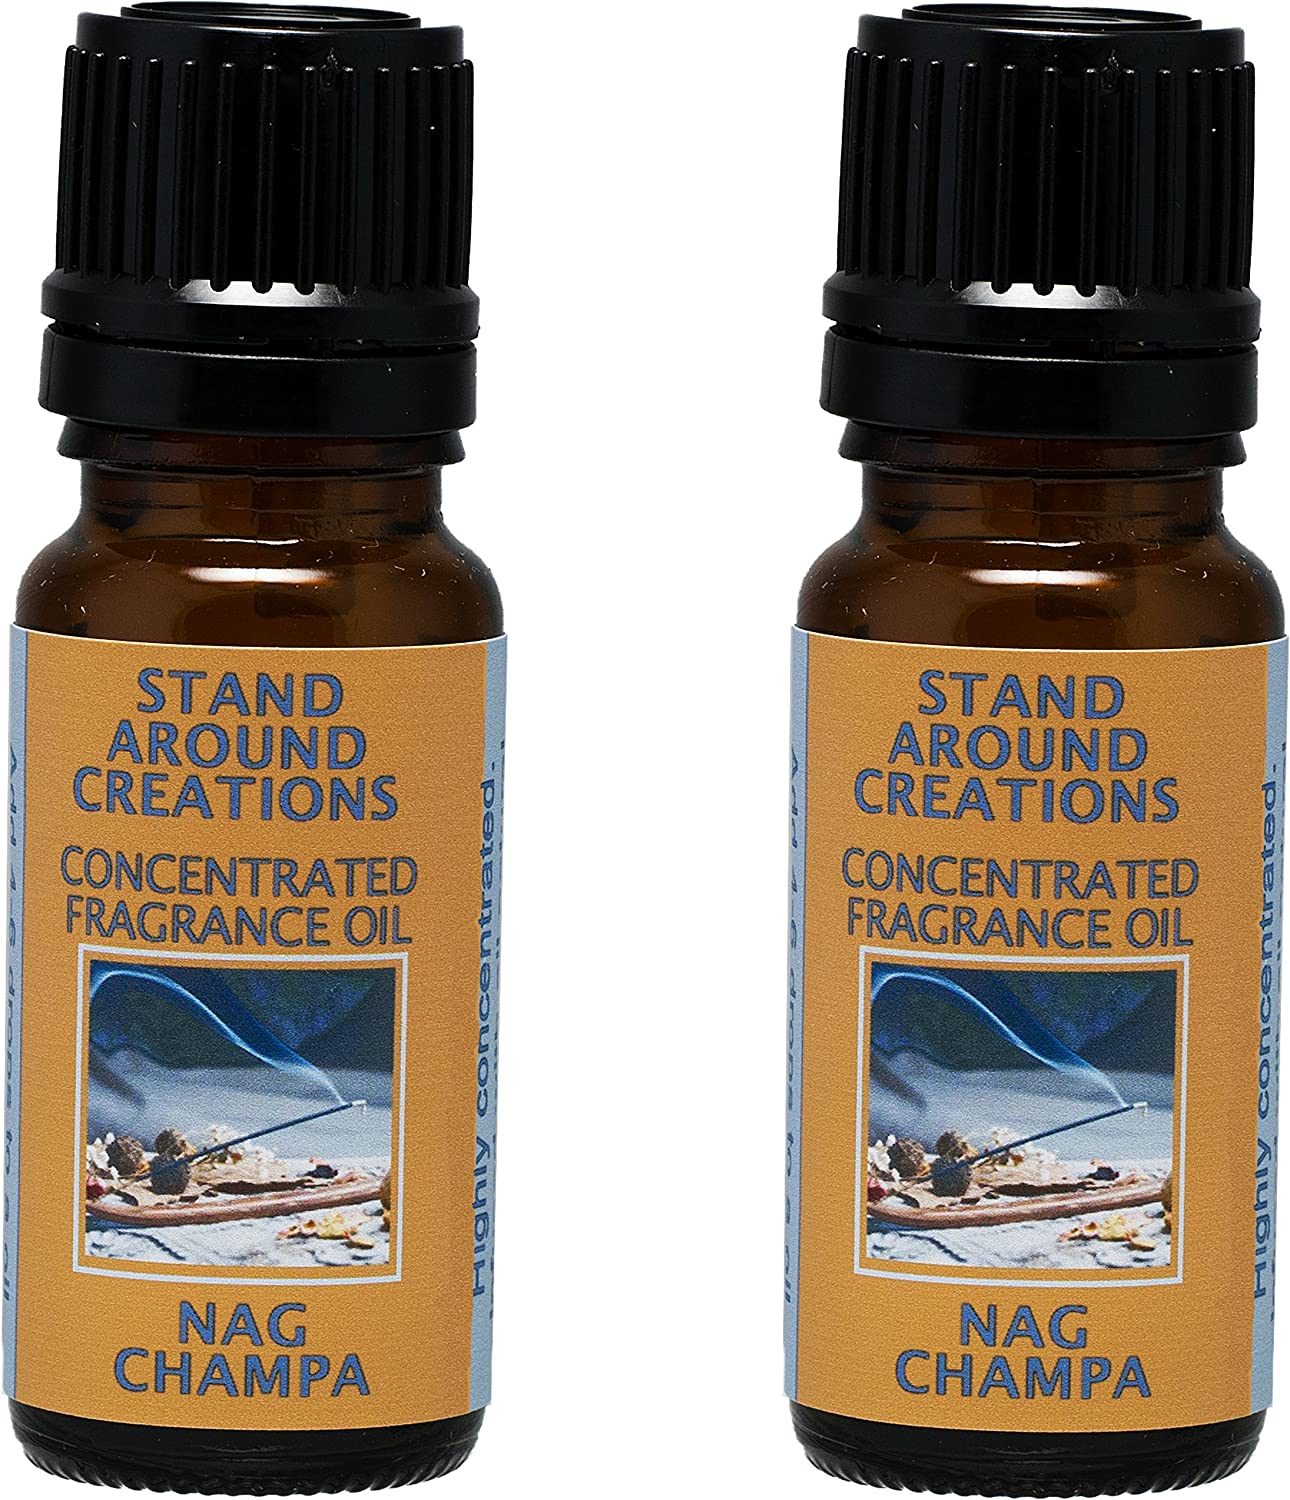 Set of 2 - Concentrated Fragrance Oil - Nag Champa: Has the aroma of incense; patchouli, sandalwood, and dragon's blood. Made with natural essential oils.(.33 fl.oz.)